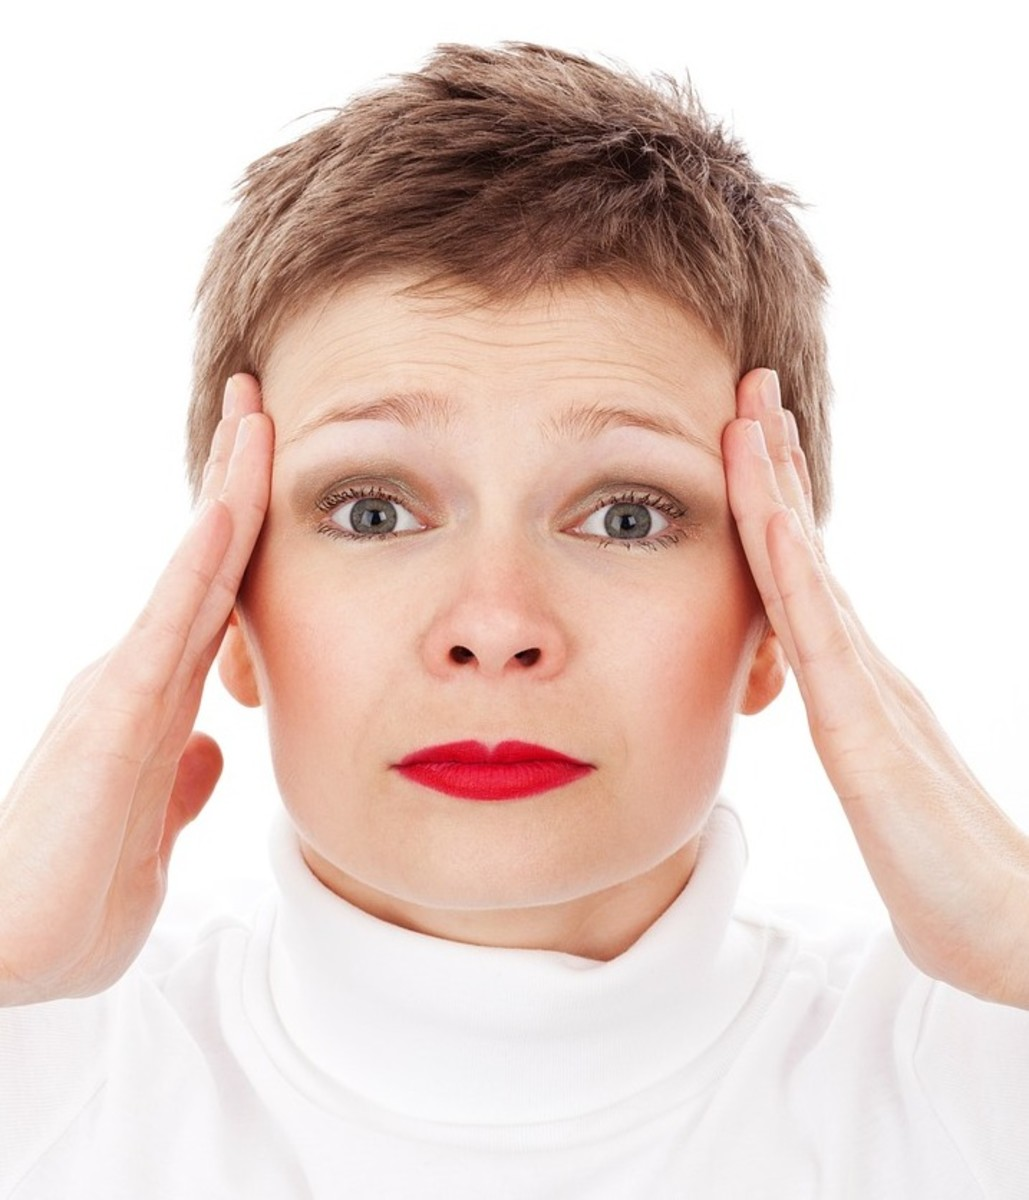 Migraine Symptoms, Treatment and Medication — It's Not